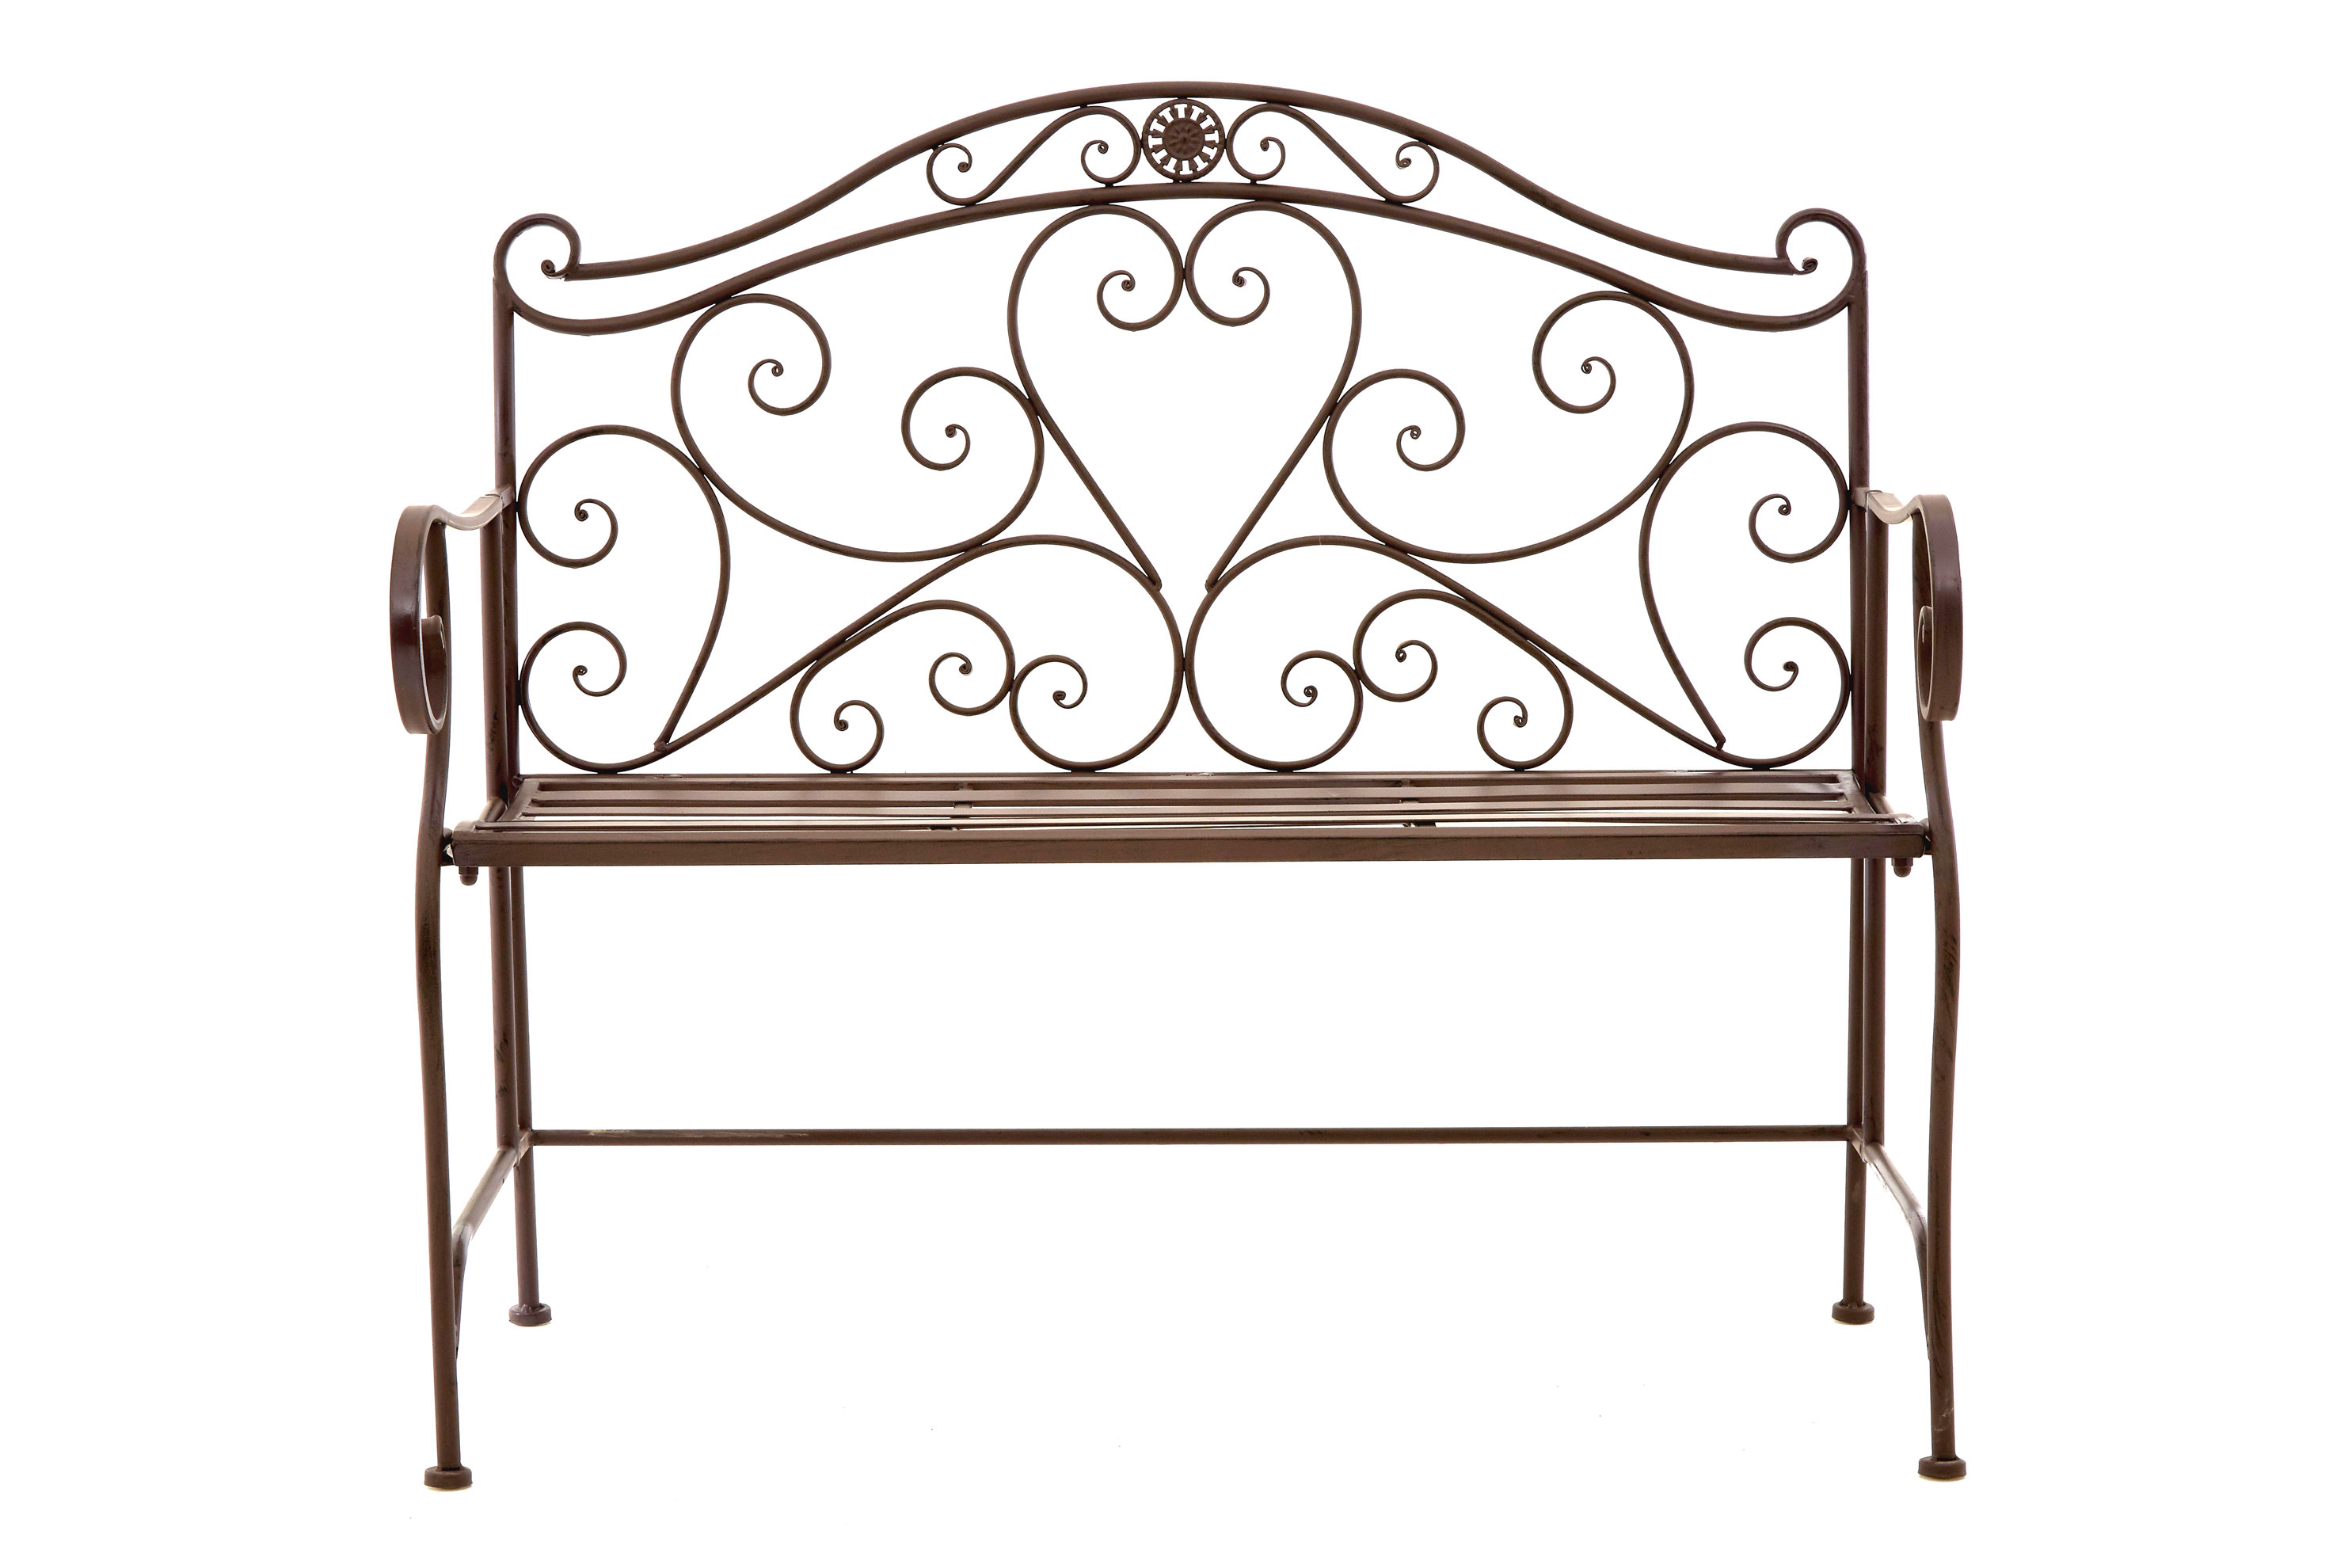 Ornate wrought iron metal bench antique brown patio garden ebay Wrought iron outdoor bench